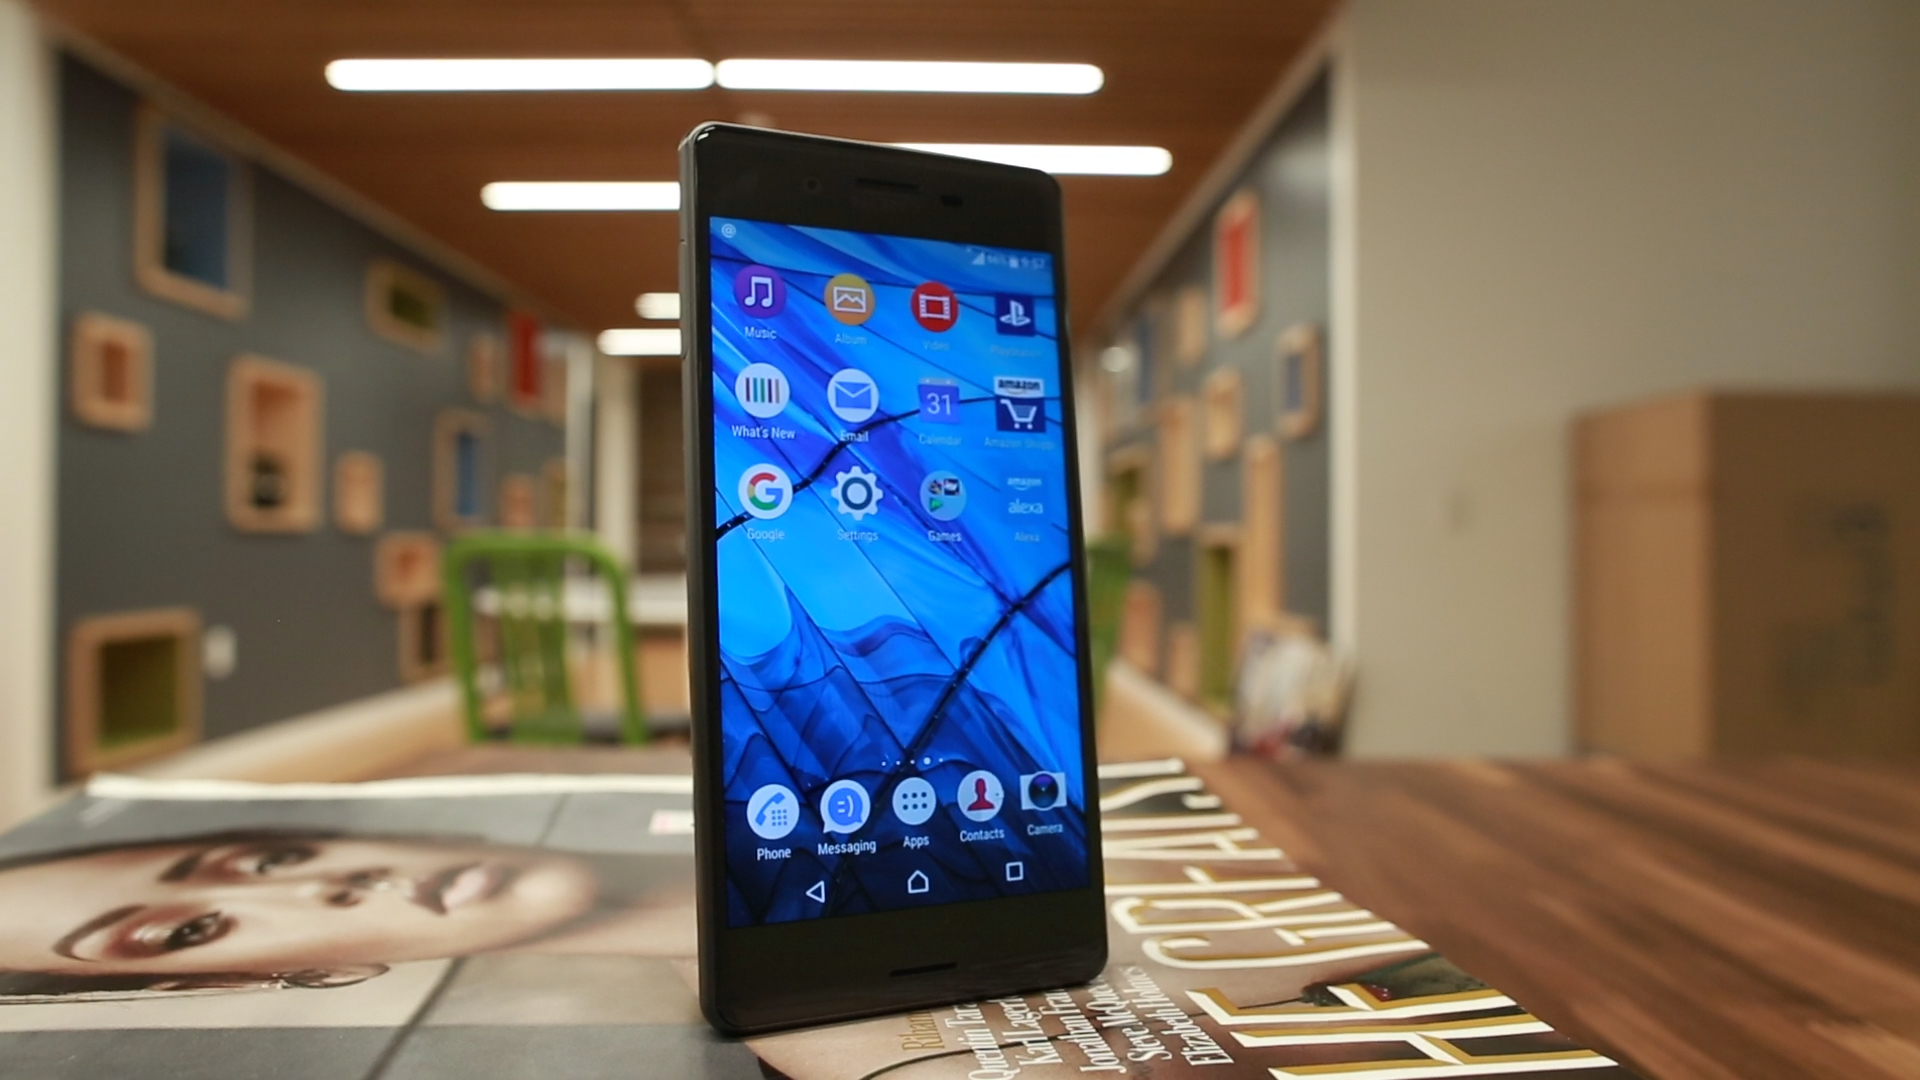 Video: Sony Xperia X phone is boxy, but nice